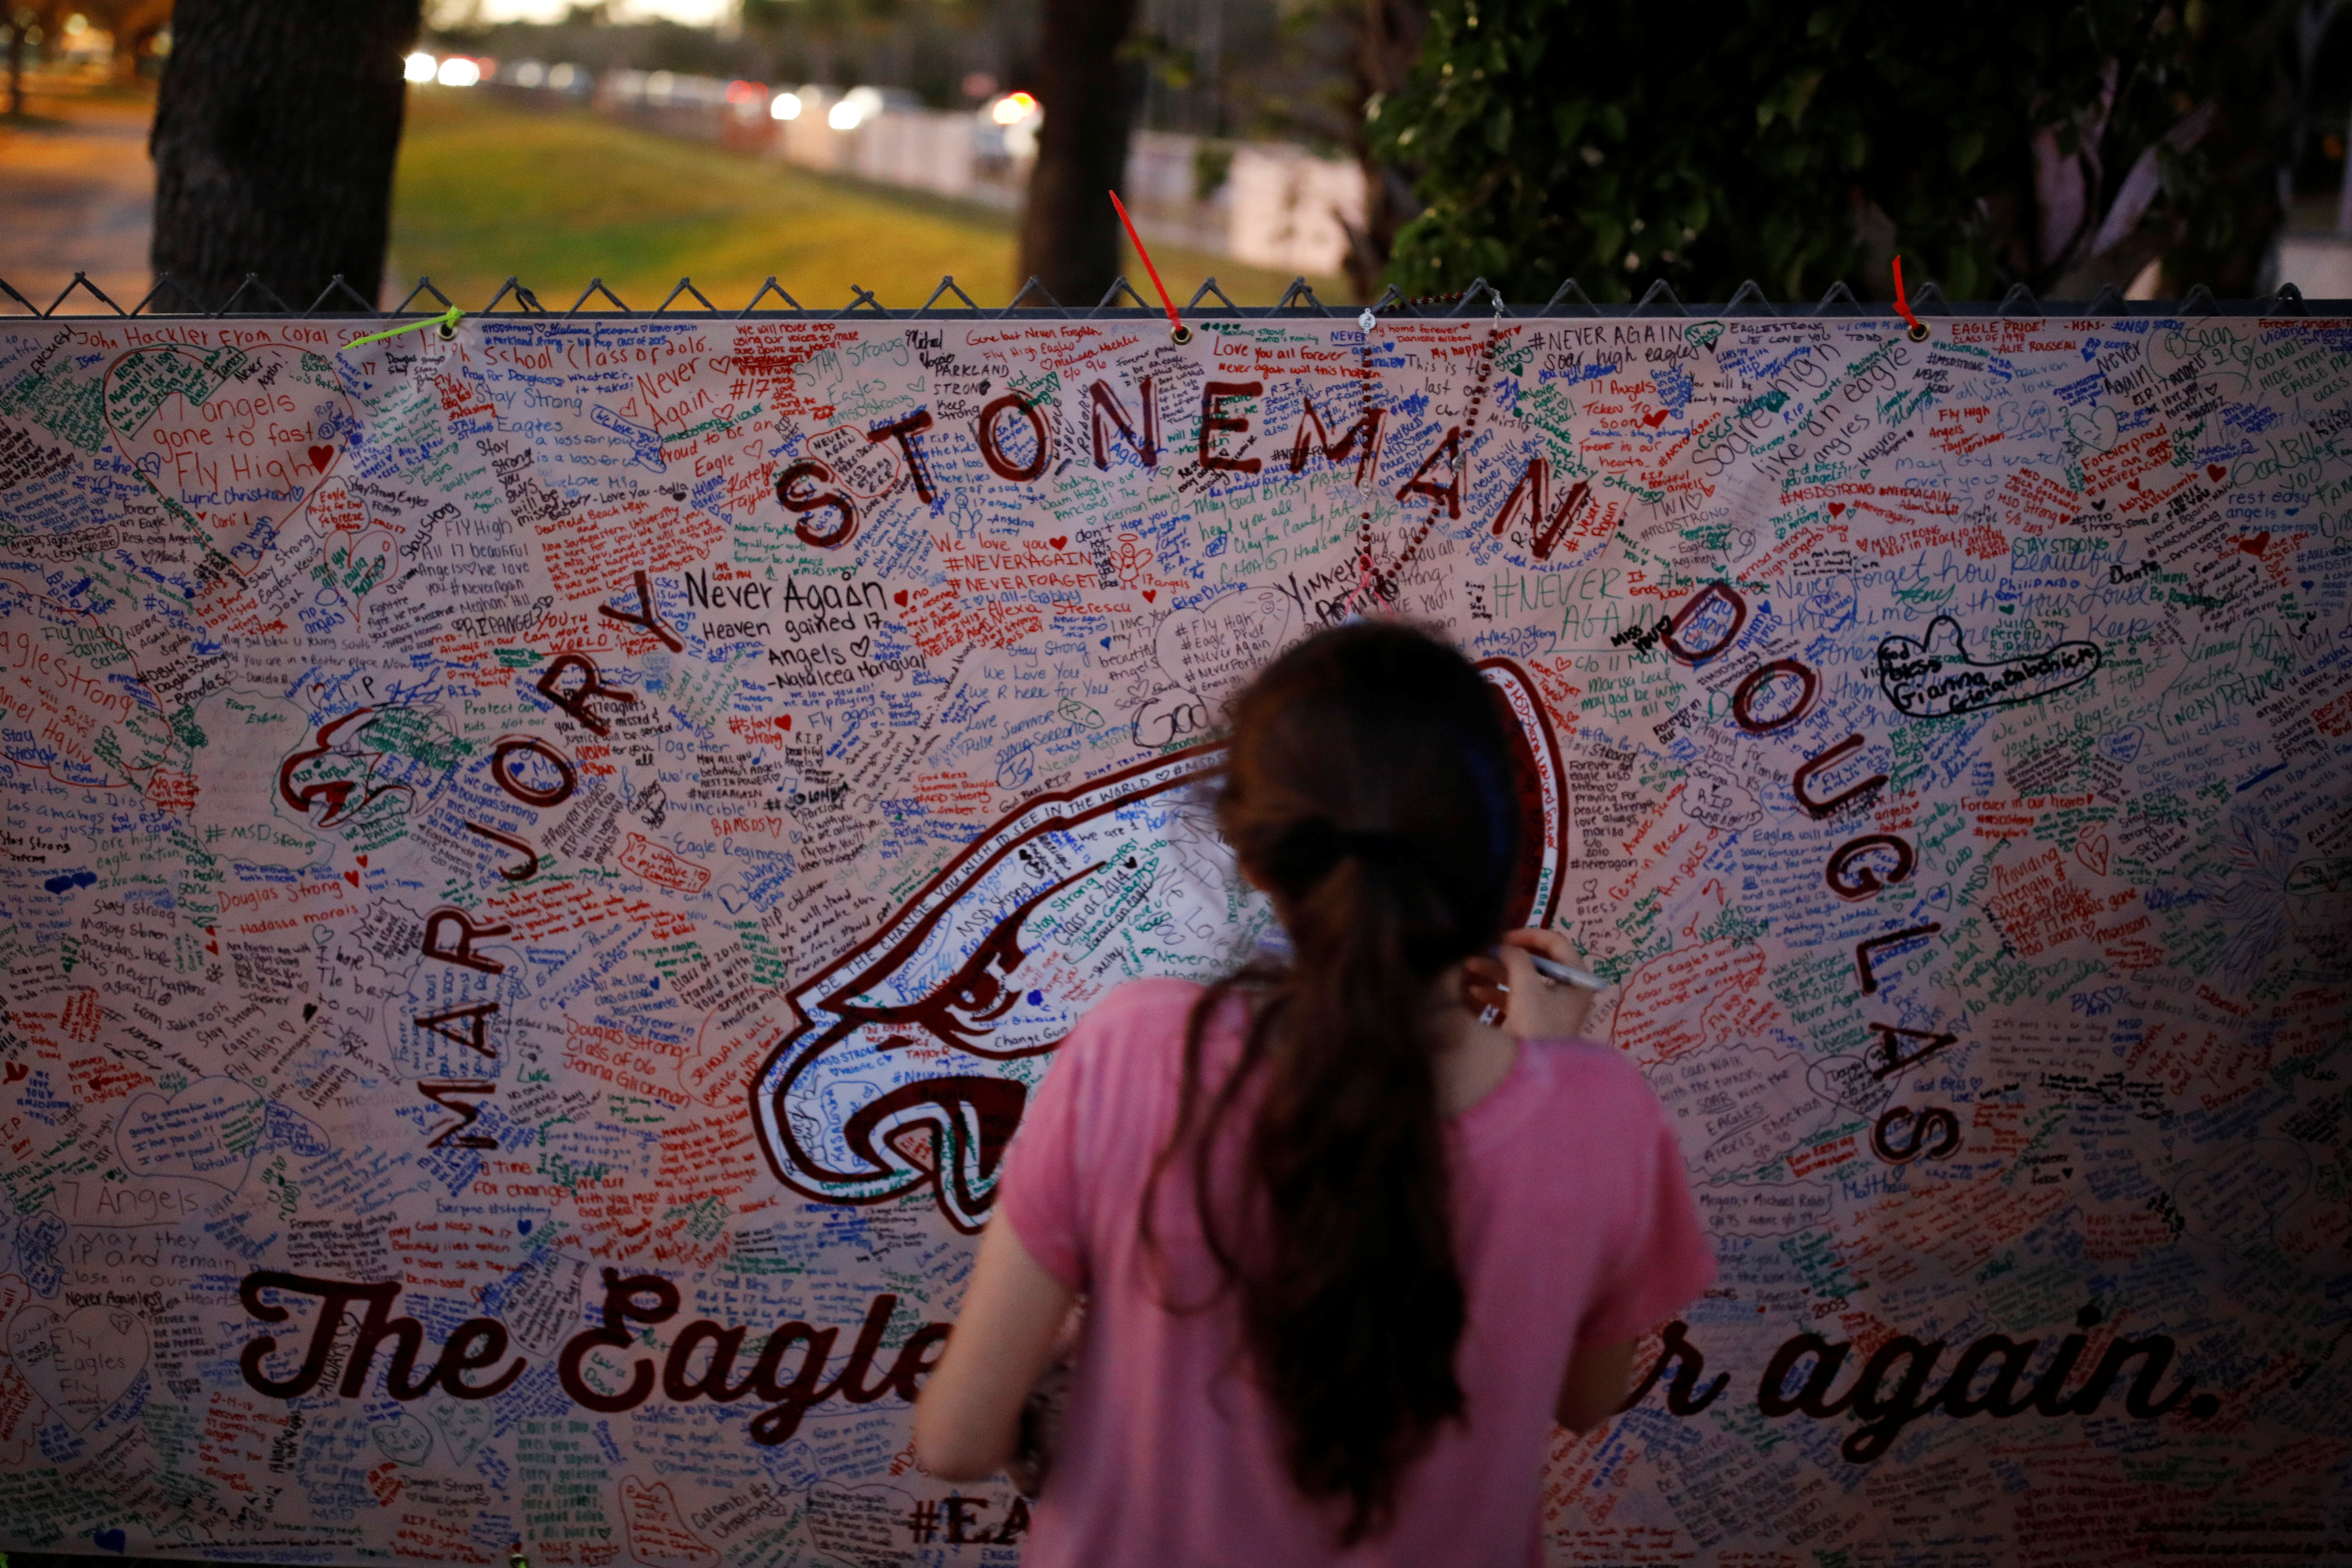 A girl writes a note on a banner placed on the fence of the Marjory Stoneman Douglas High School to commemorate the victims of the mass shooting, in Parkland, Florida, U.S., February 21, 2018. REUTERS/Carlos Garcia Rawlins